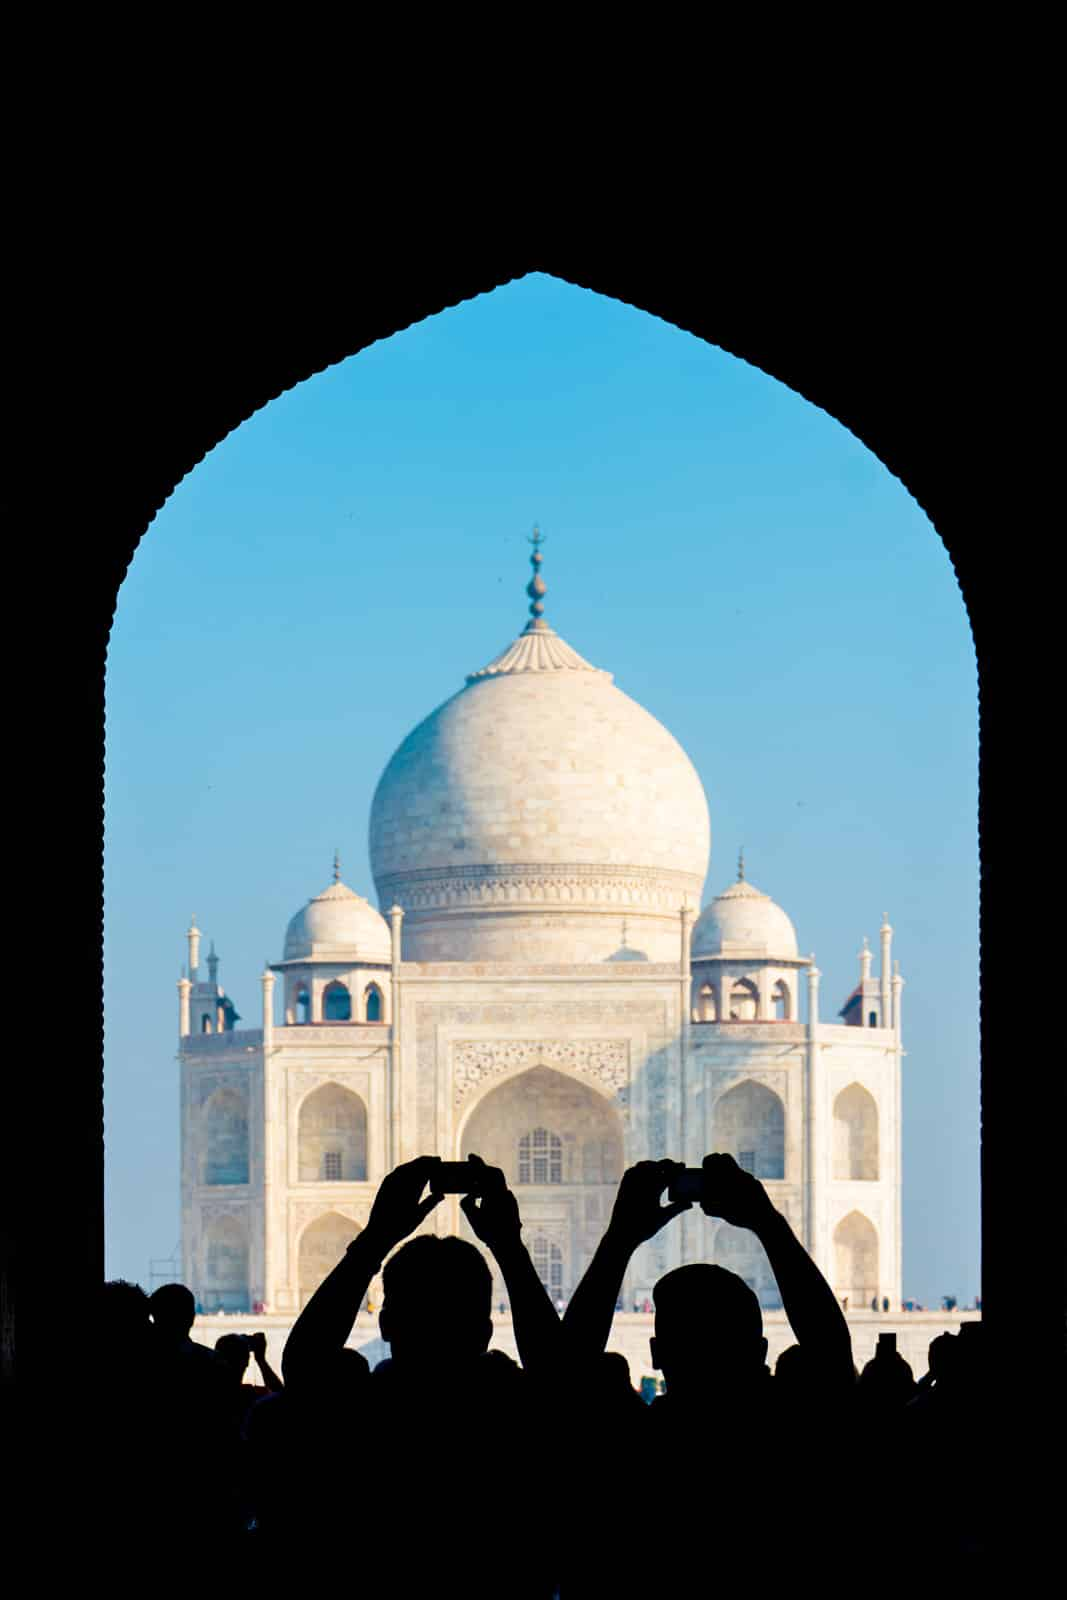 Tourists with cameras at the Taj Mahal in Agra, India.